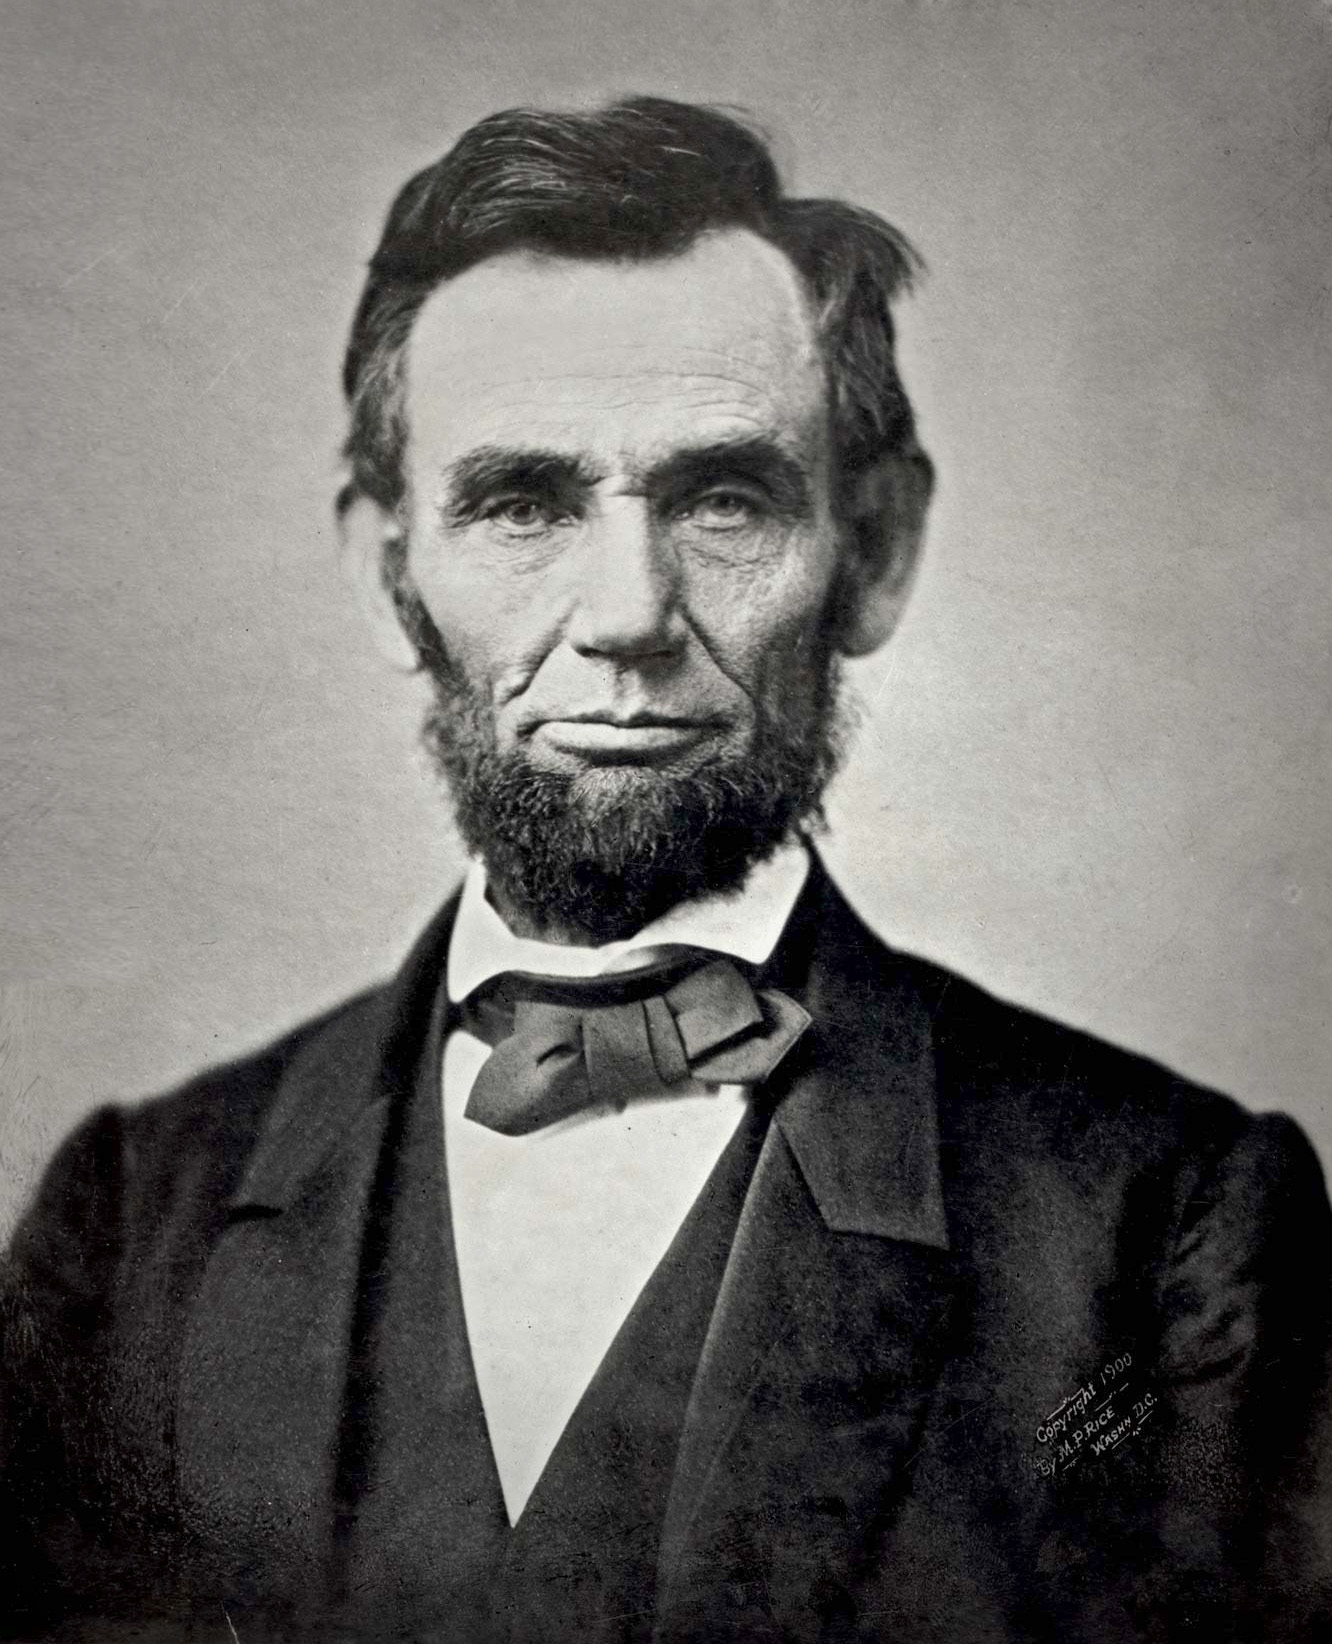 File:Abraham Lincoln November 1863.jpg - Wikipedia, the ...